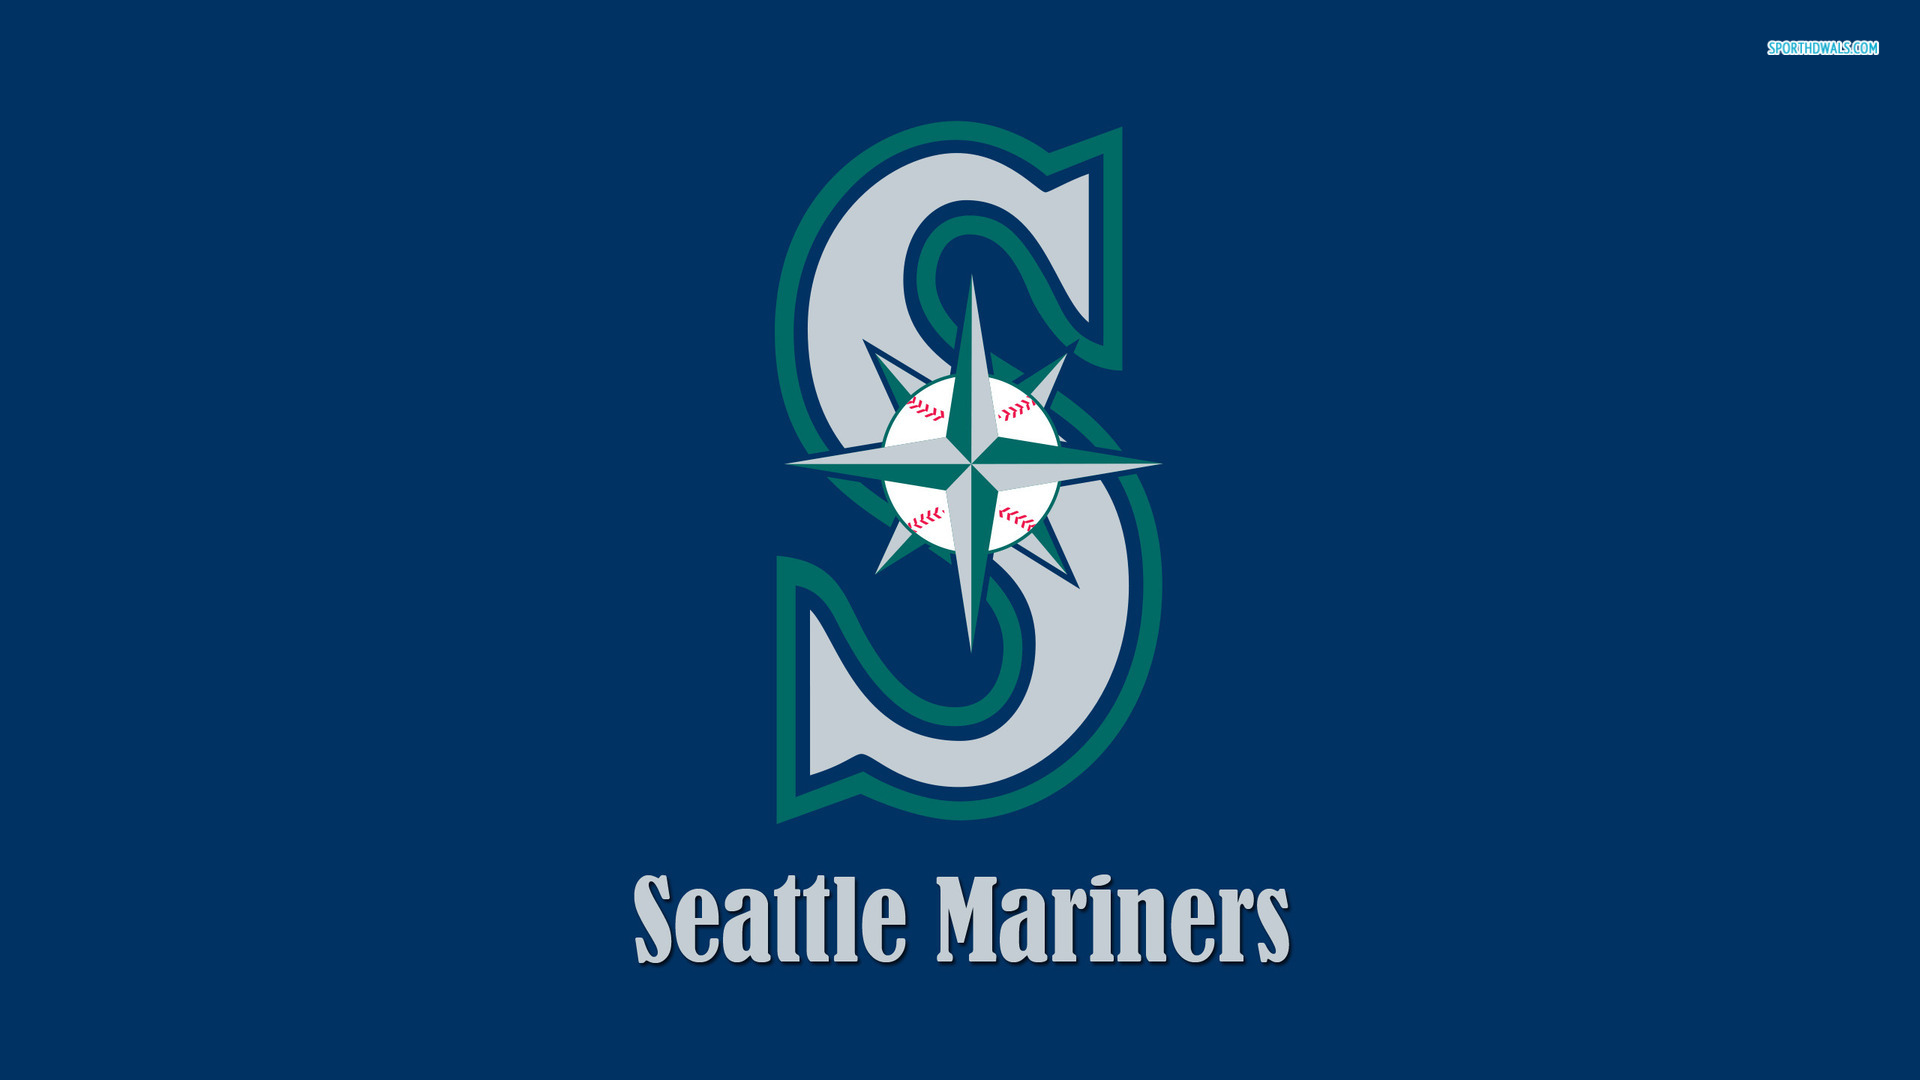 seattle mariners 511 1920x1080 Seattle Mariners HD Wallpaper